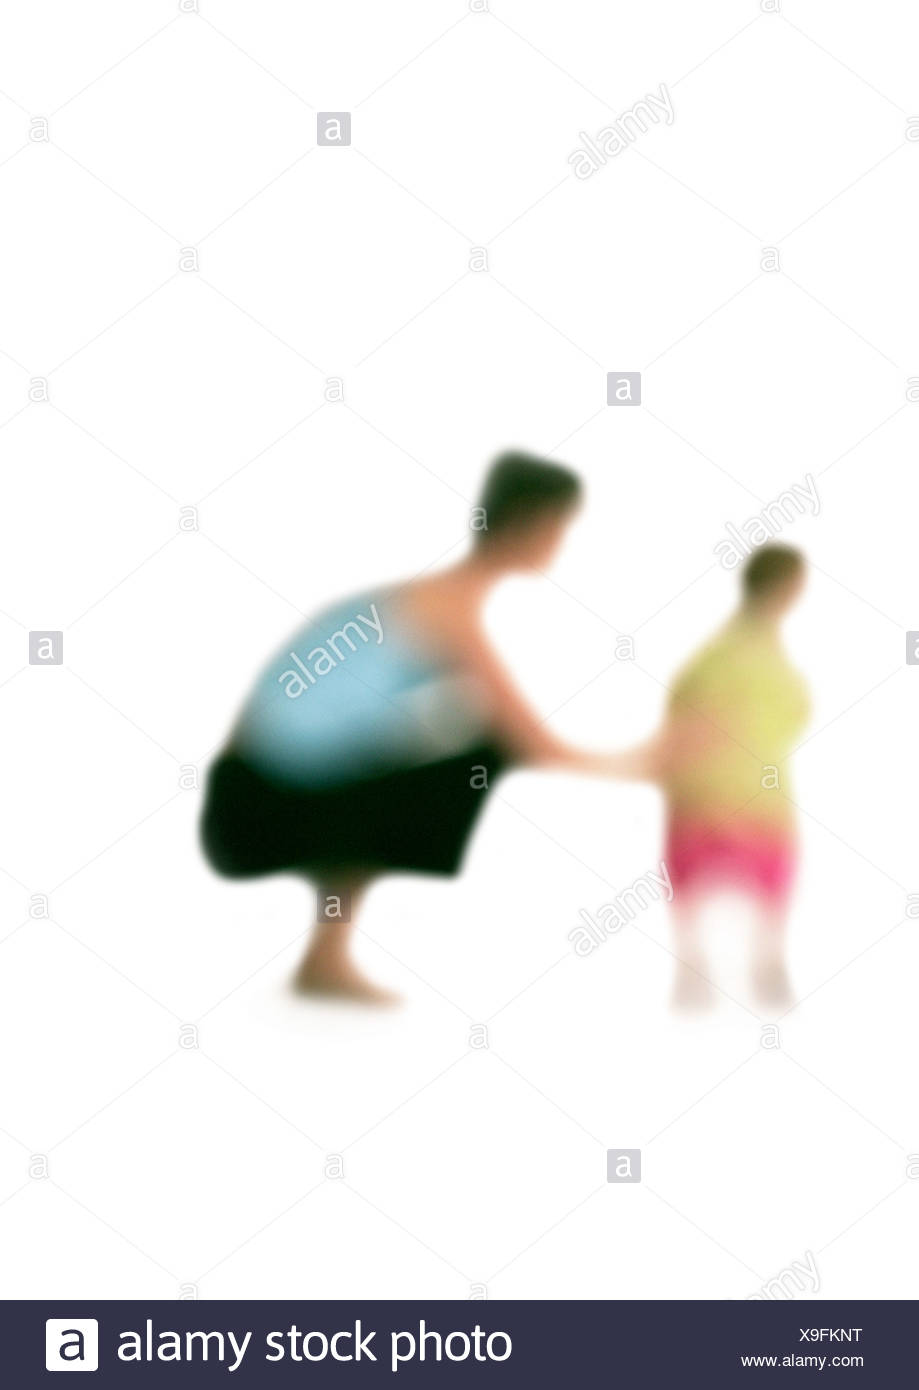 Silhouette of woman squatting down next to child, on white background, defocused - Stock Image